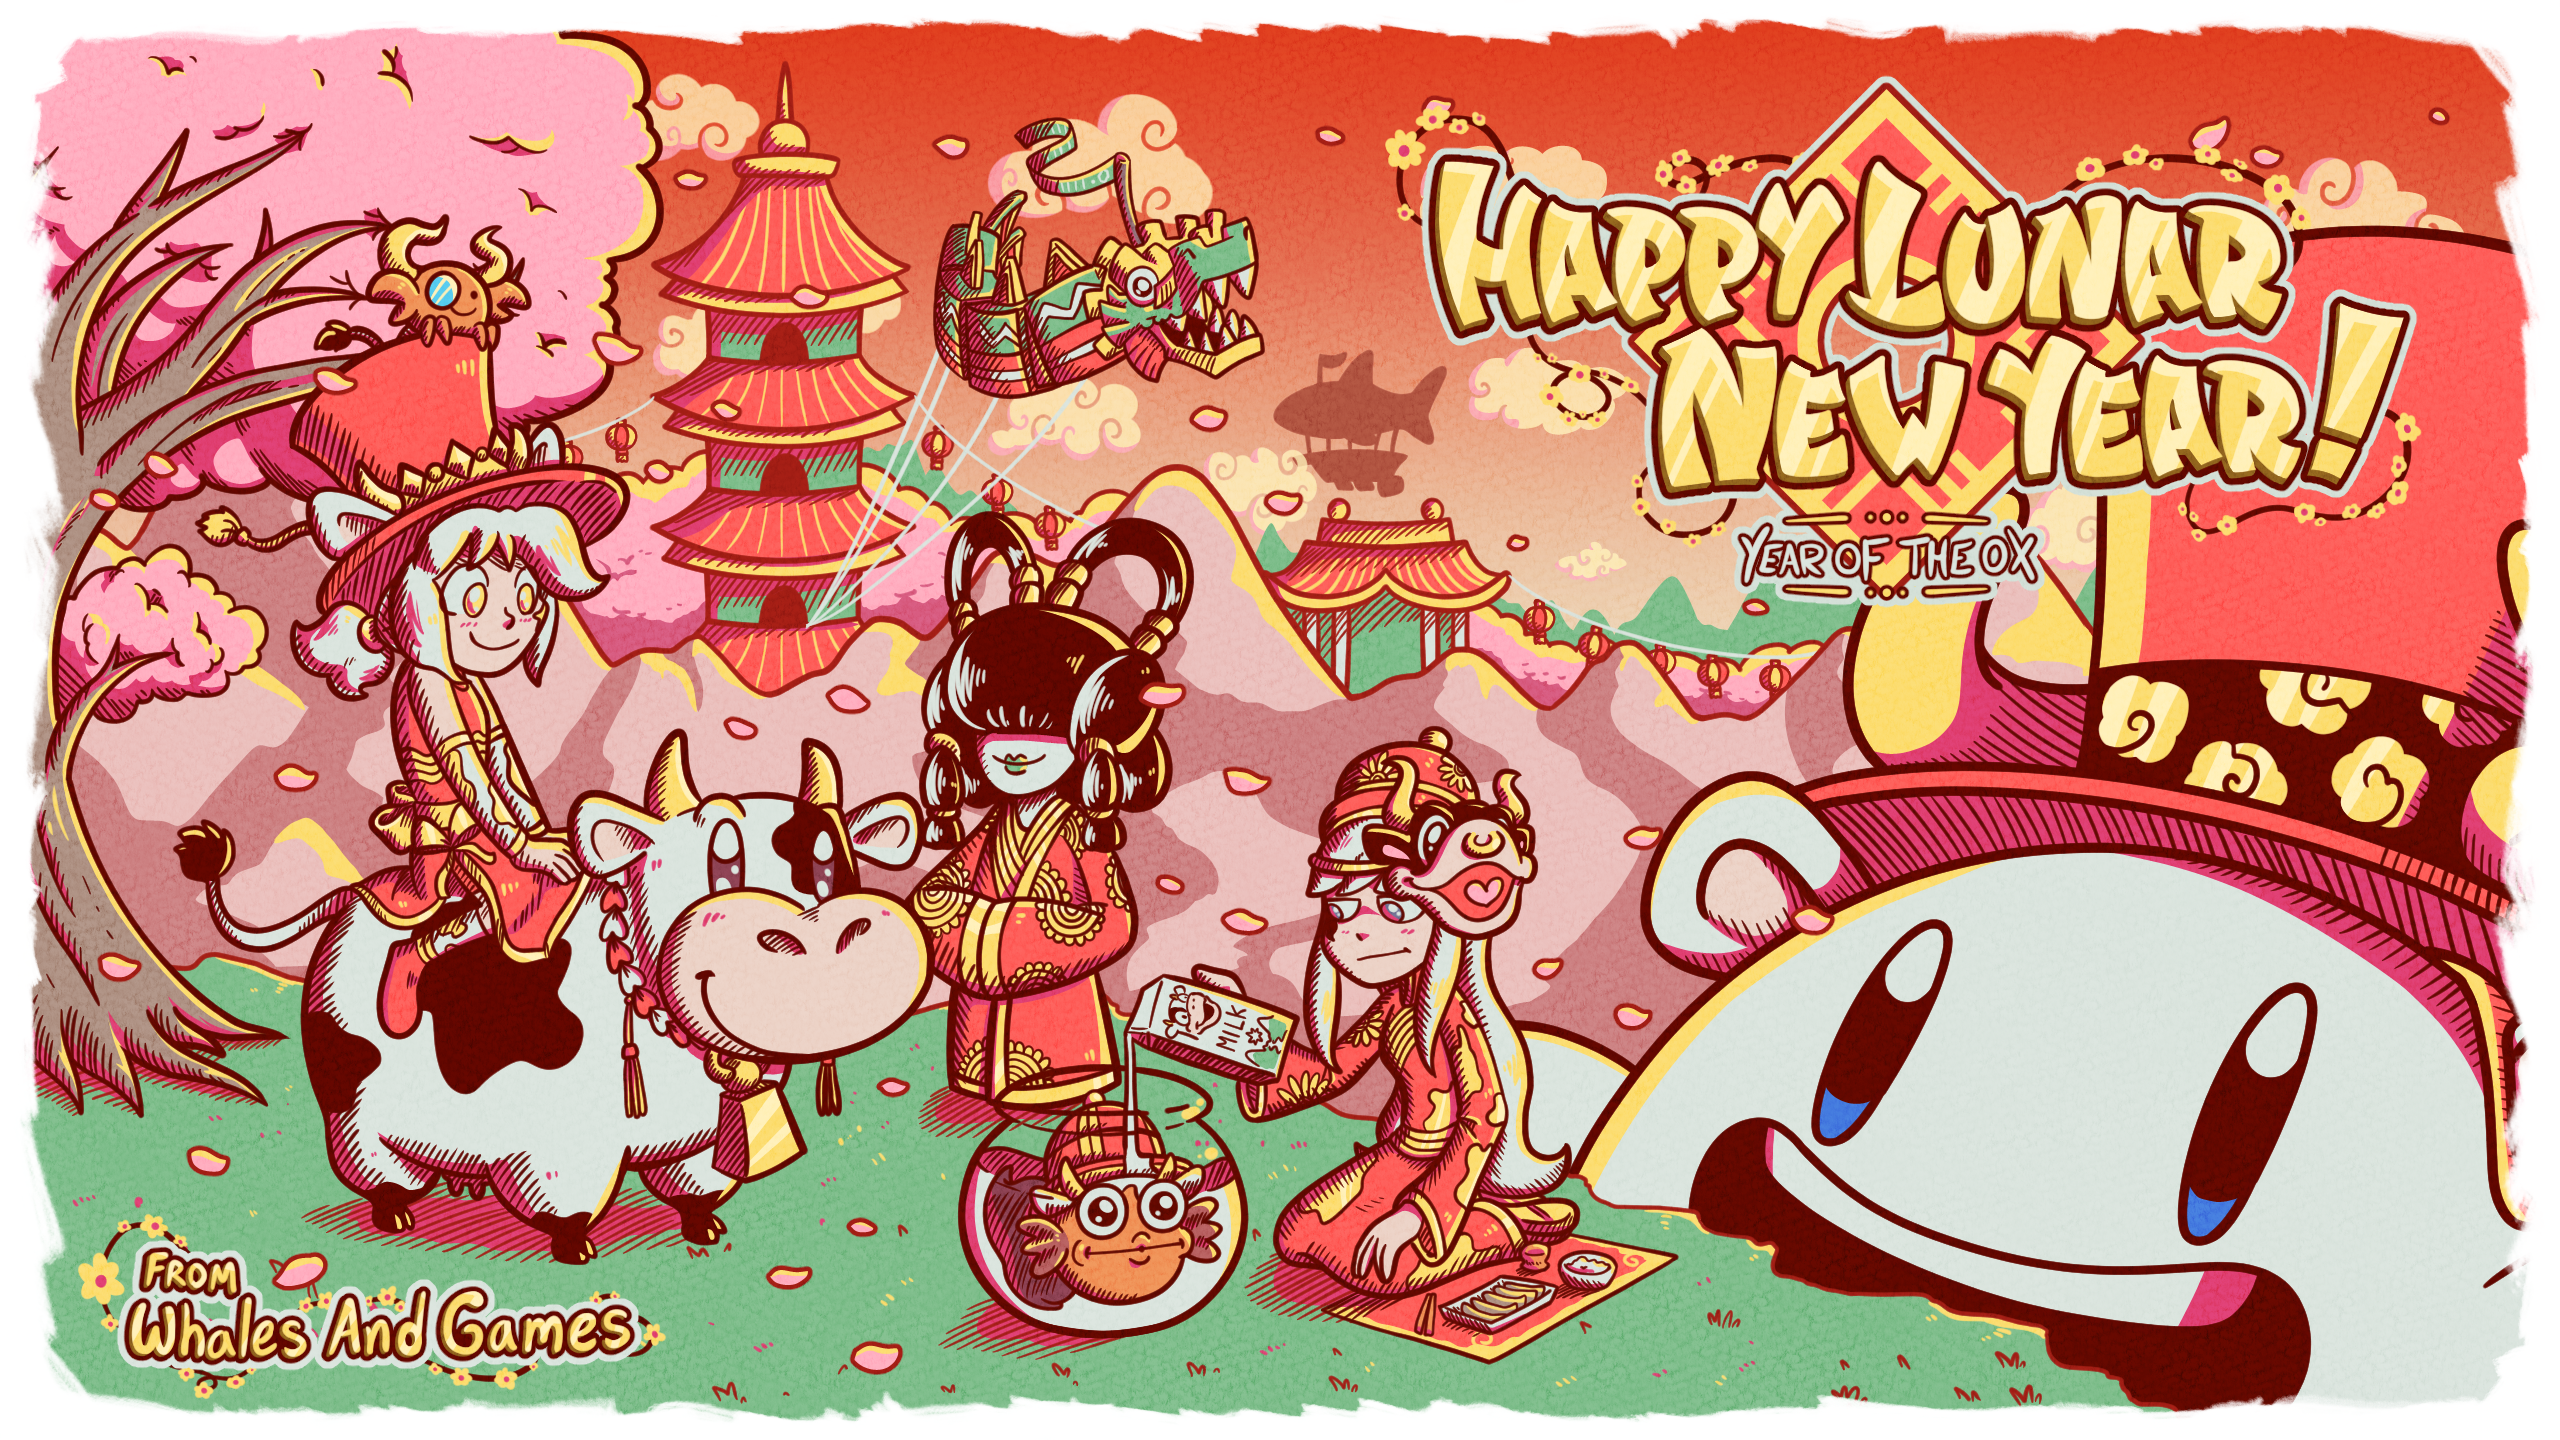 Happy Lunar New Year and Year of the Ox Celebratory Artwork featuring whaleverse characters, including Whalechan, Isha, Dapperchan and Dapperfish, with Polite Whale as an Ox in the background.